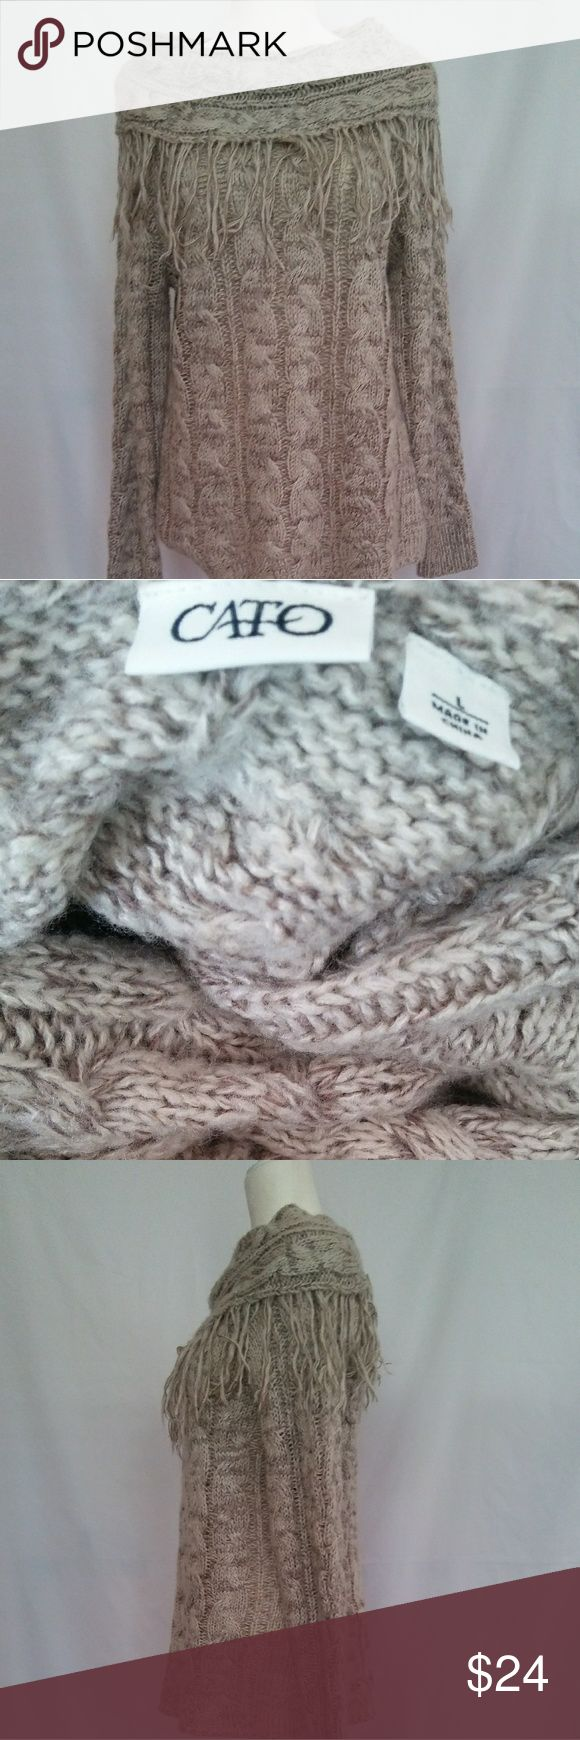 REDUCED!!! Cato large cowl neck women's sweater. Cato large cowl neck sweater.  Measurements as follows, shoulder-to-shoulder 16in, neck to waste 25-inch, pit to pit 14 in. All measurements done from the back. Cato Sweaters Cowl & Turtlenecks